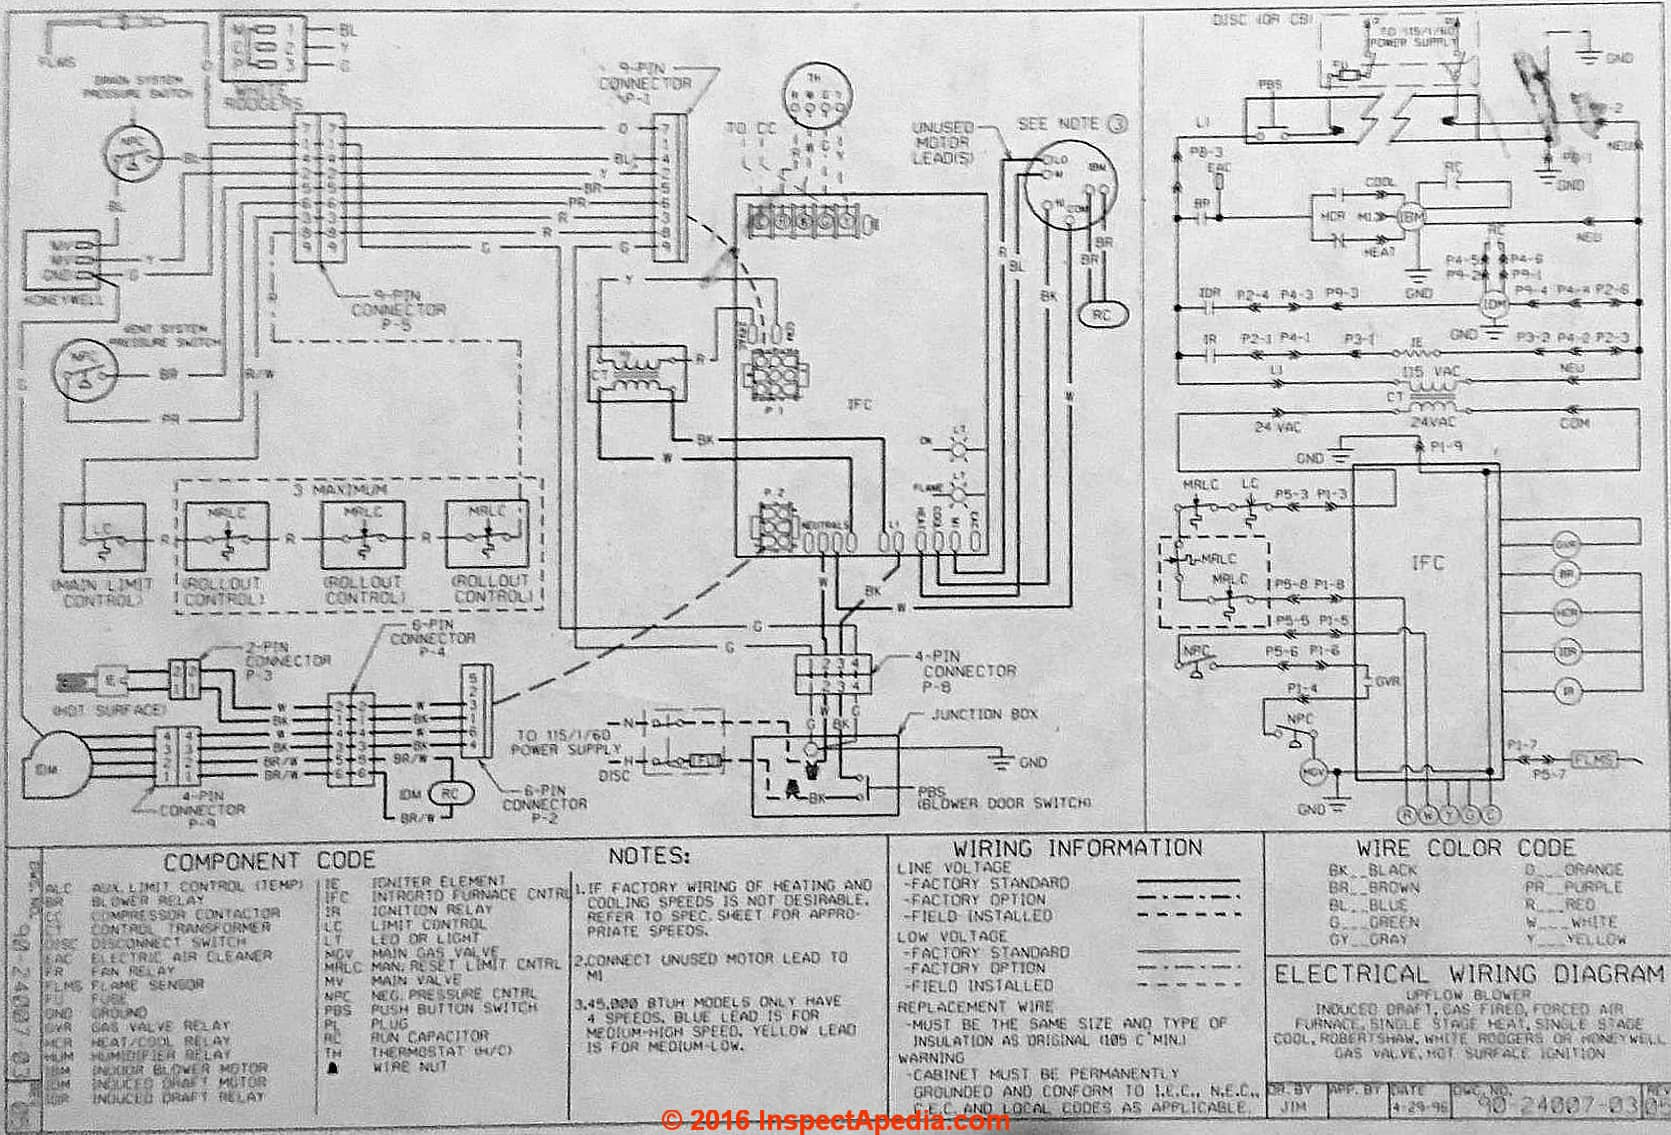 Rheem_AHU_Wiring_Diagram_IAP air conditioner heat pump faqs international comfort products wiring diagram at alyssarenee.co